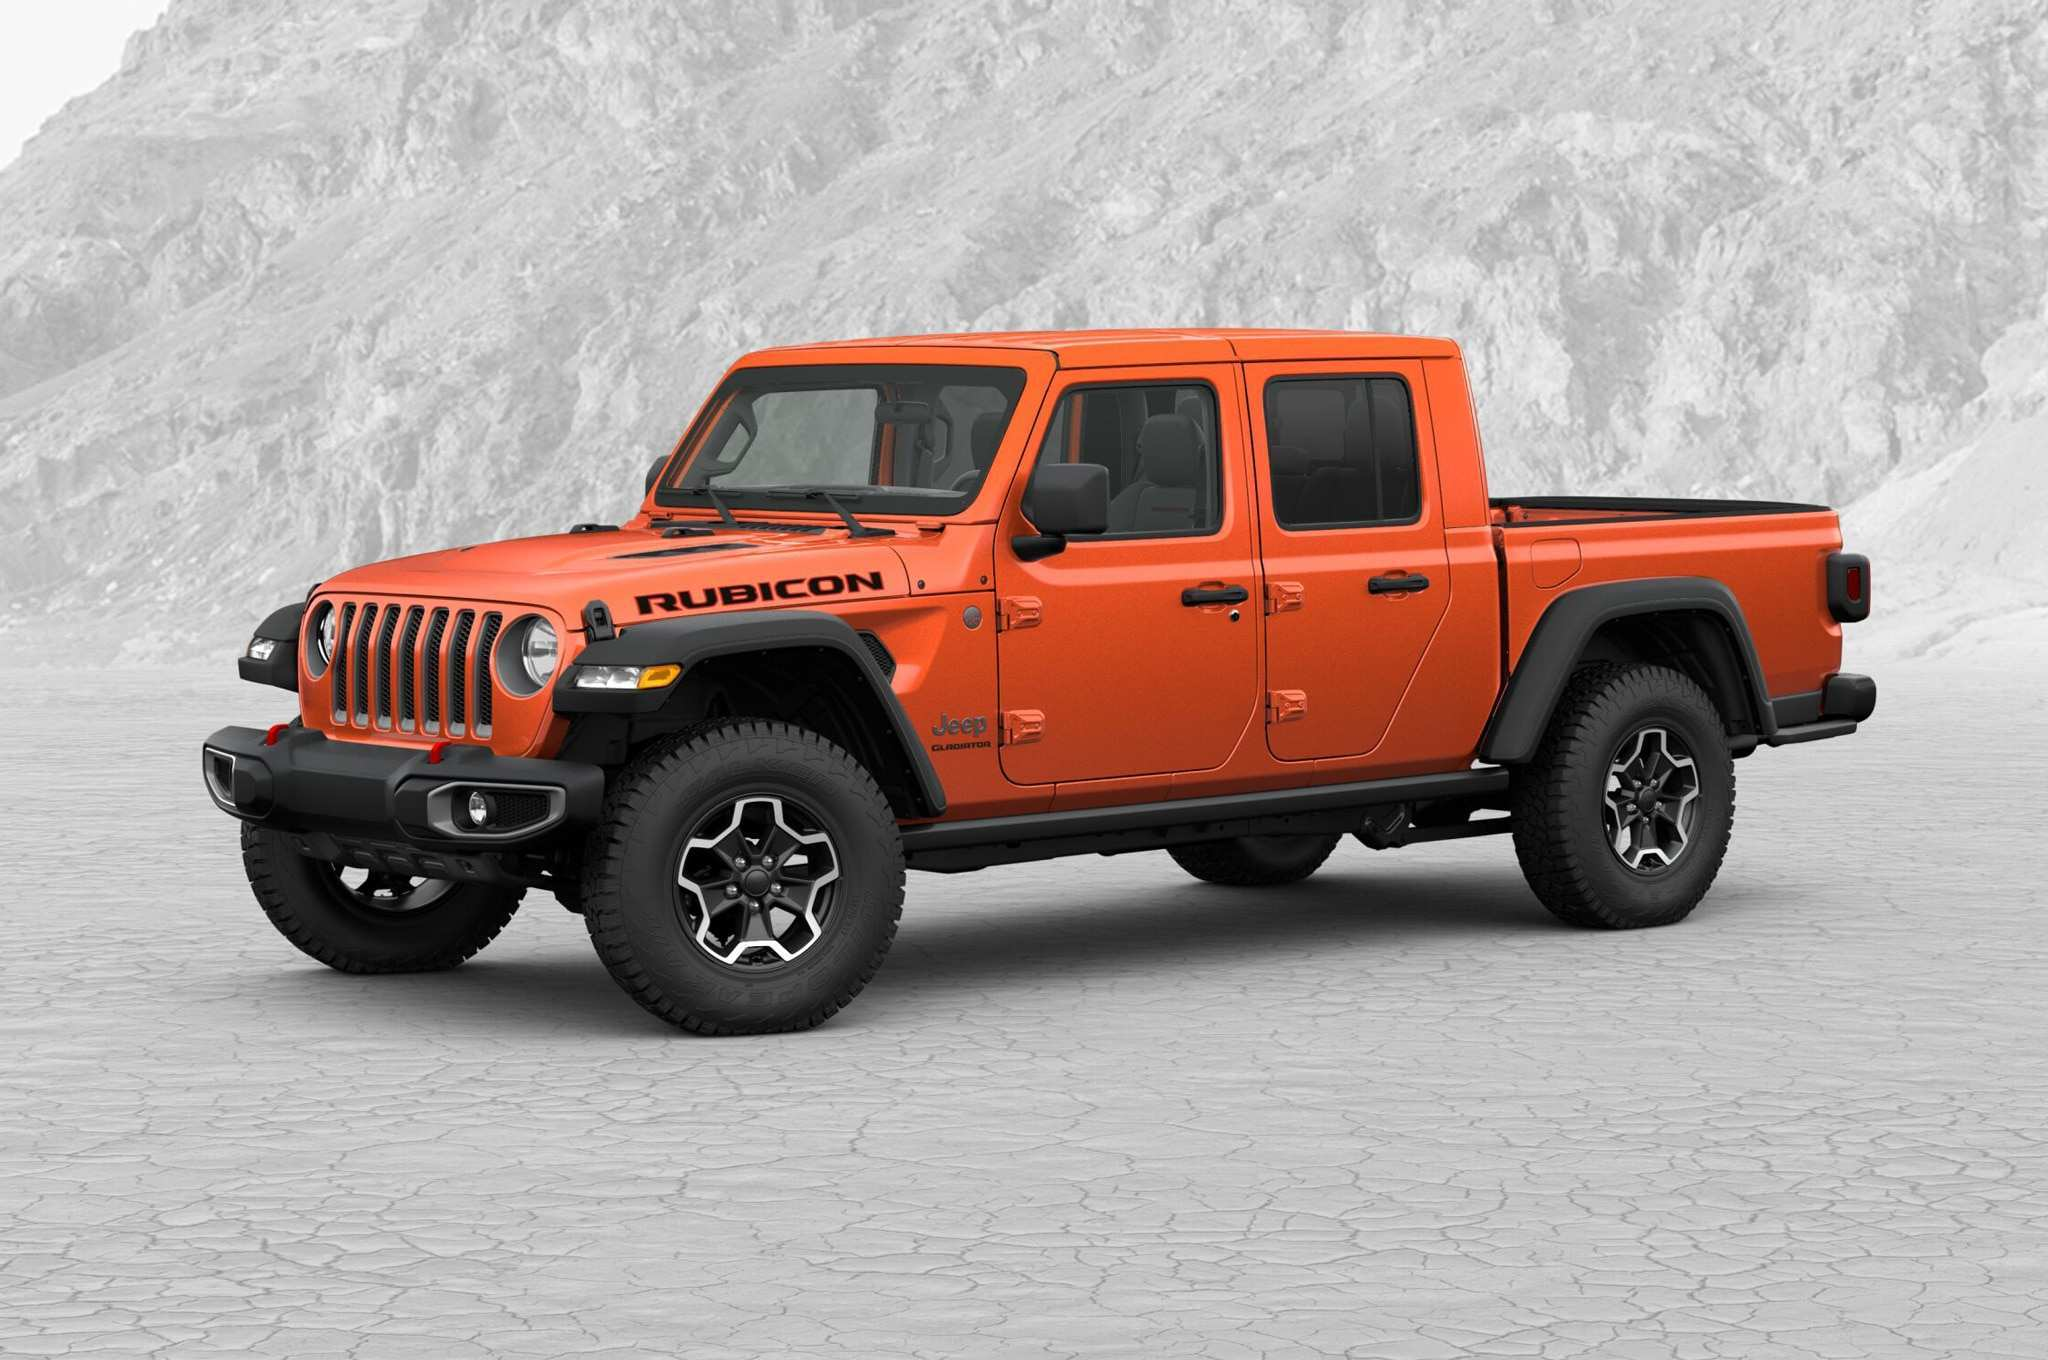 78 All New What Is The Price Of The 2020 Jeep Gladiator Exterior